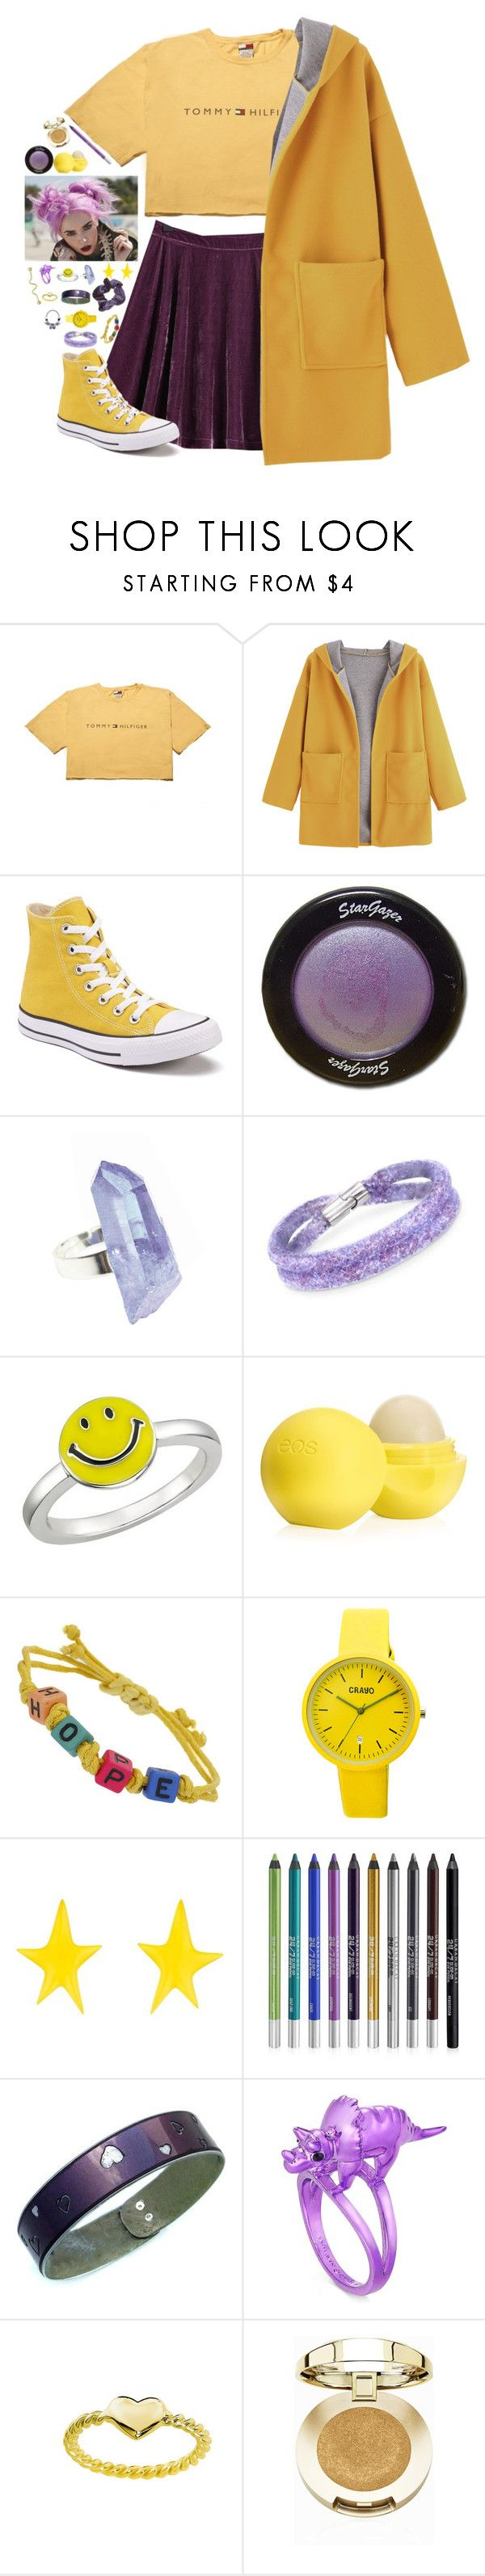 """""""~~the best of us can find happiness in misery~~"""" by we-are-the-wild-ones ❤ liked on Polyvore featuring TAXI, Converse, AstralEYE, Swarovski, Ice, Eos, Miss Selfridge, Crayo, Alexis Bittar and Urban Decay"""